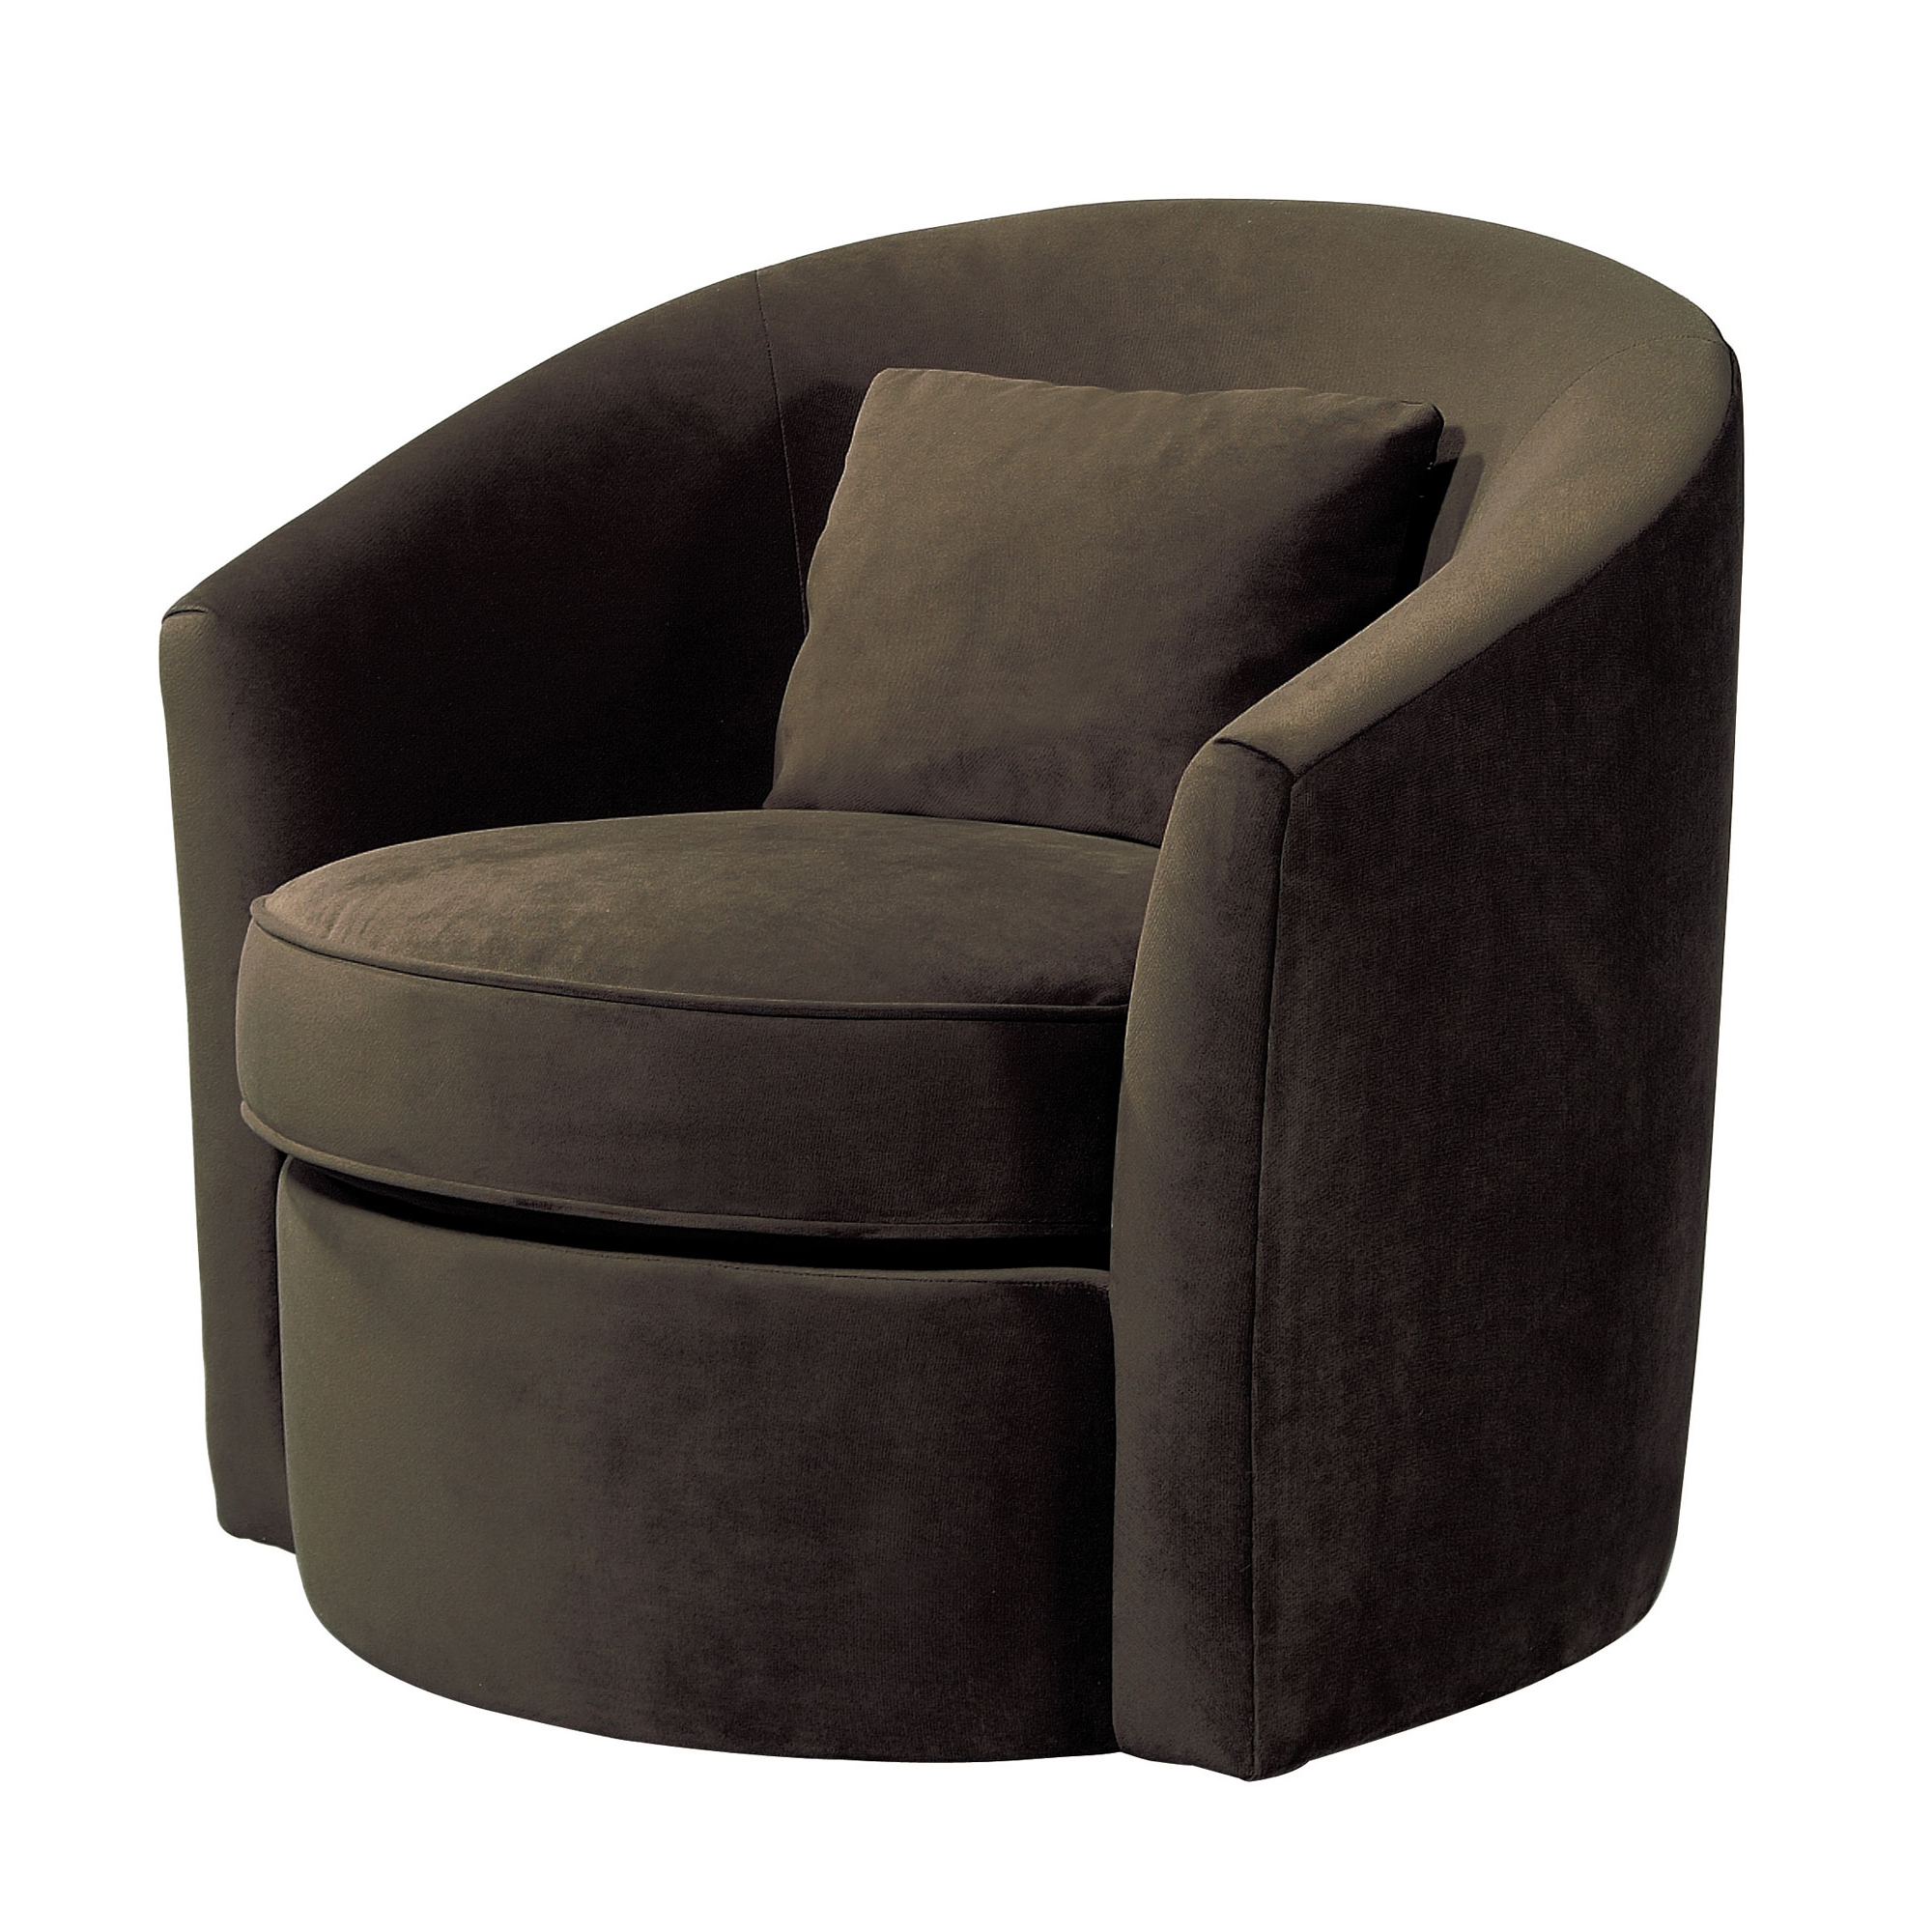 Well Known Luxury Leather Swivel Armchair Scheme – Hello Intended For Kawai Leather Swivel Chairs (View 12 of 20)